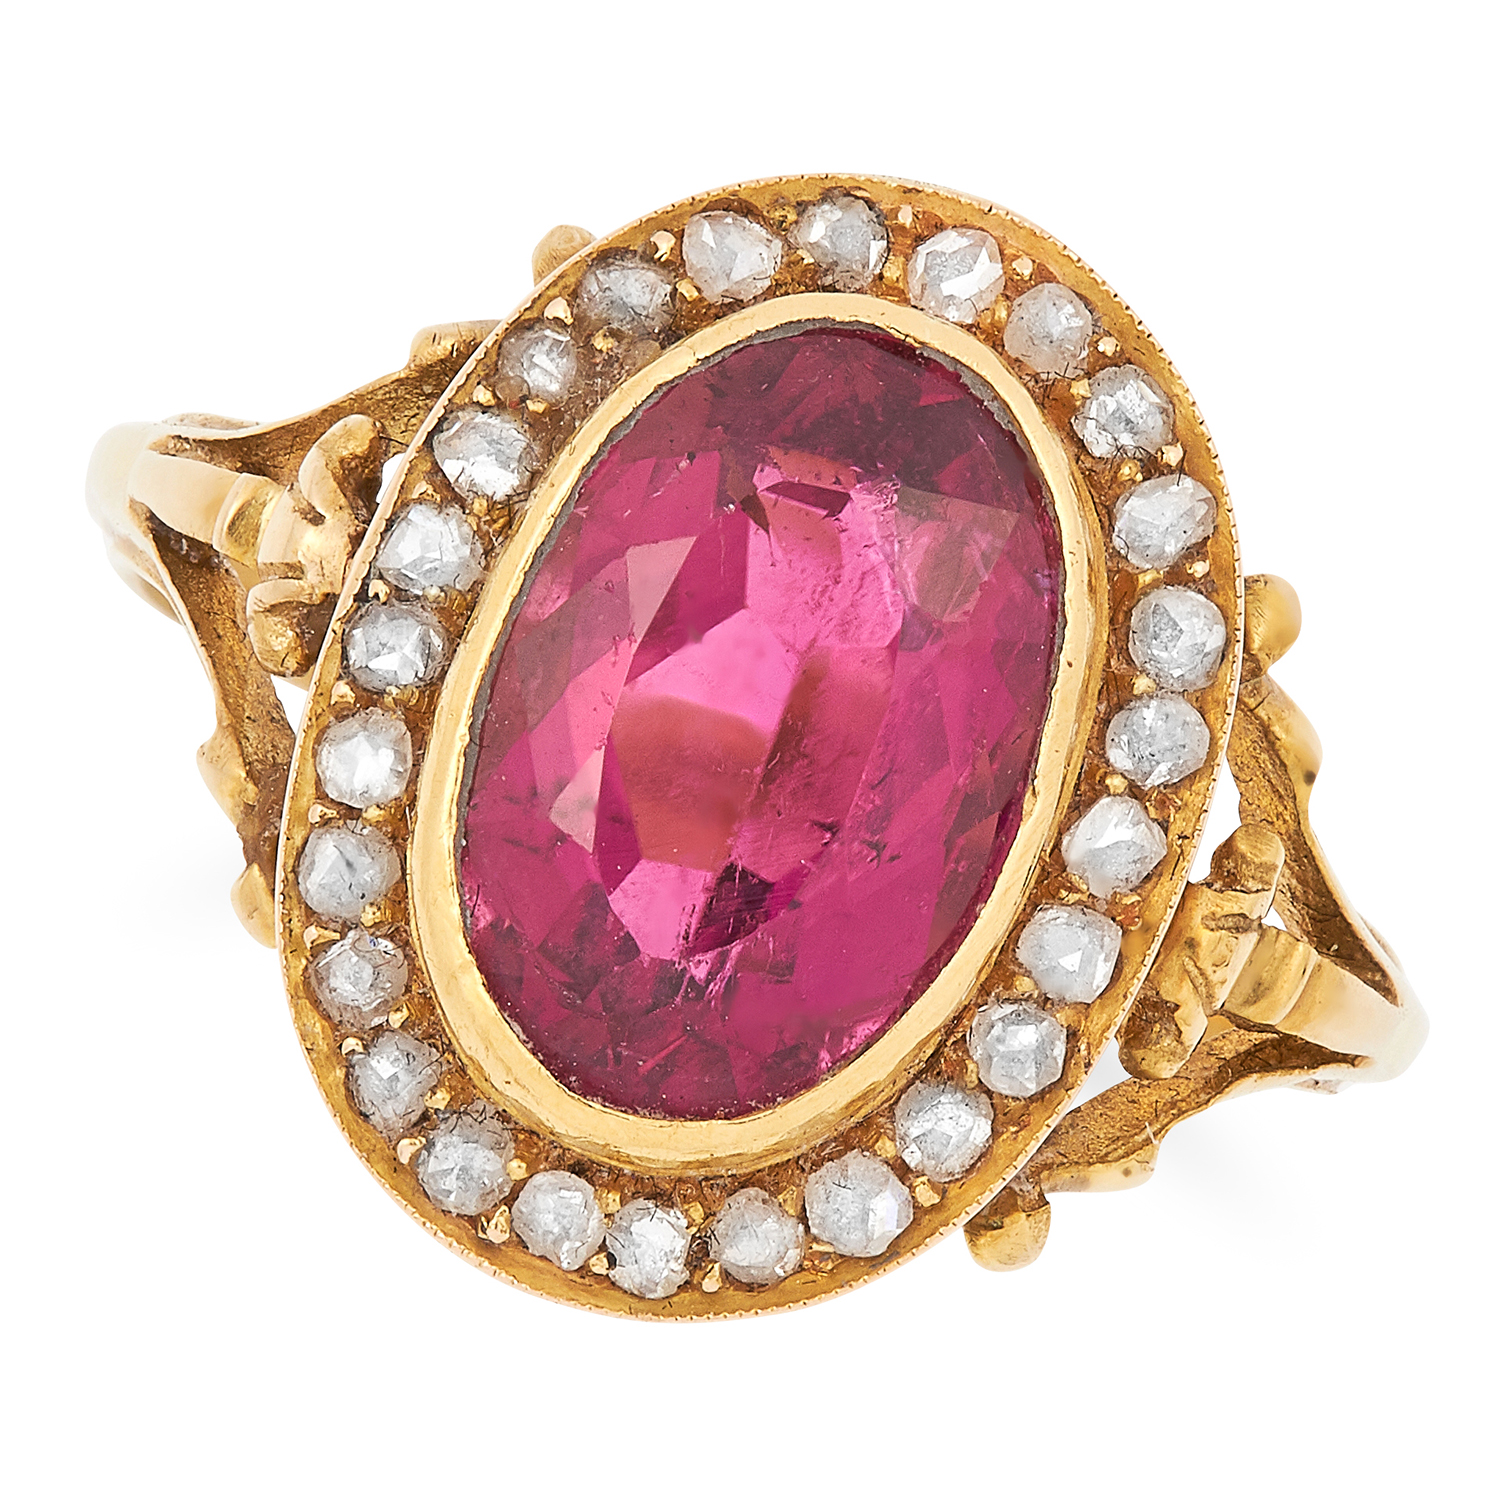 ANTIQUE TOURMALINE AND DIAMOND CLUSTER RING set with an oval cut tourmaline in a border of rose